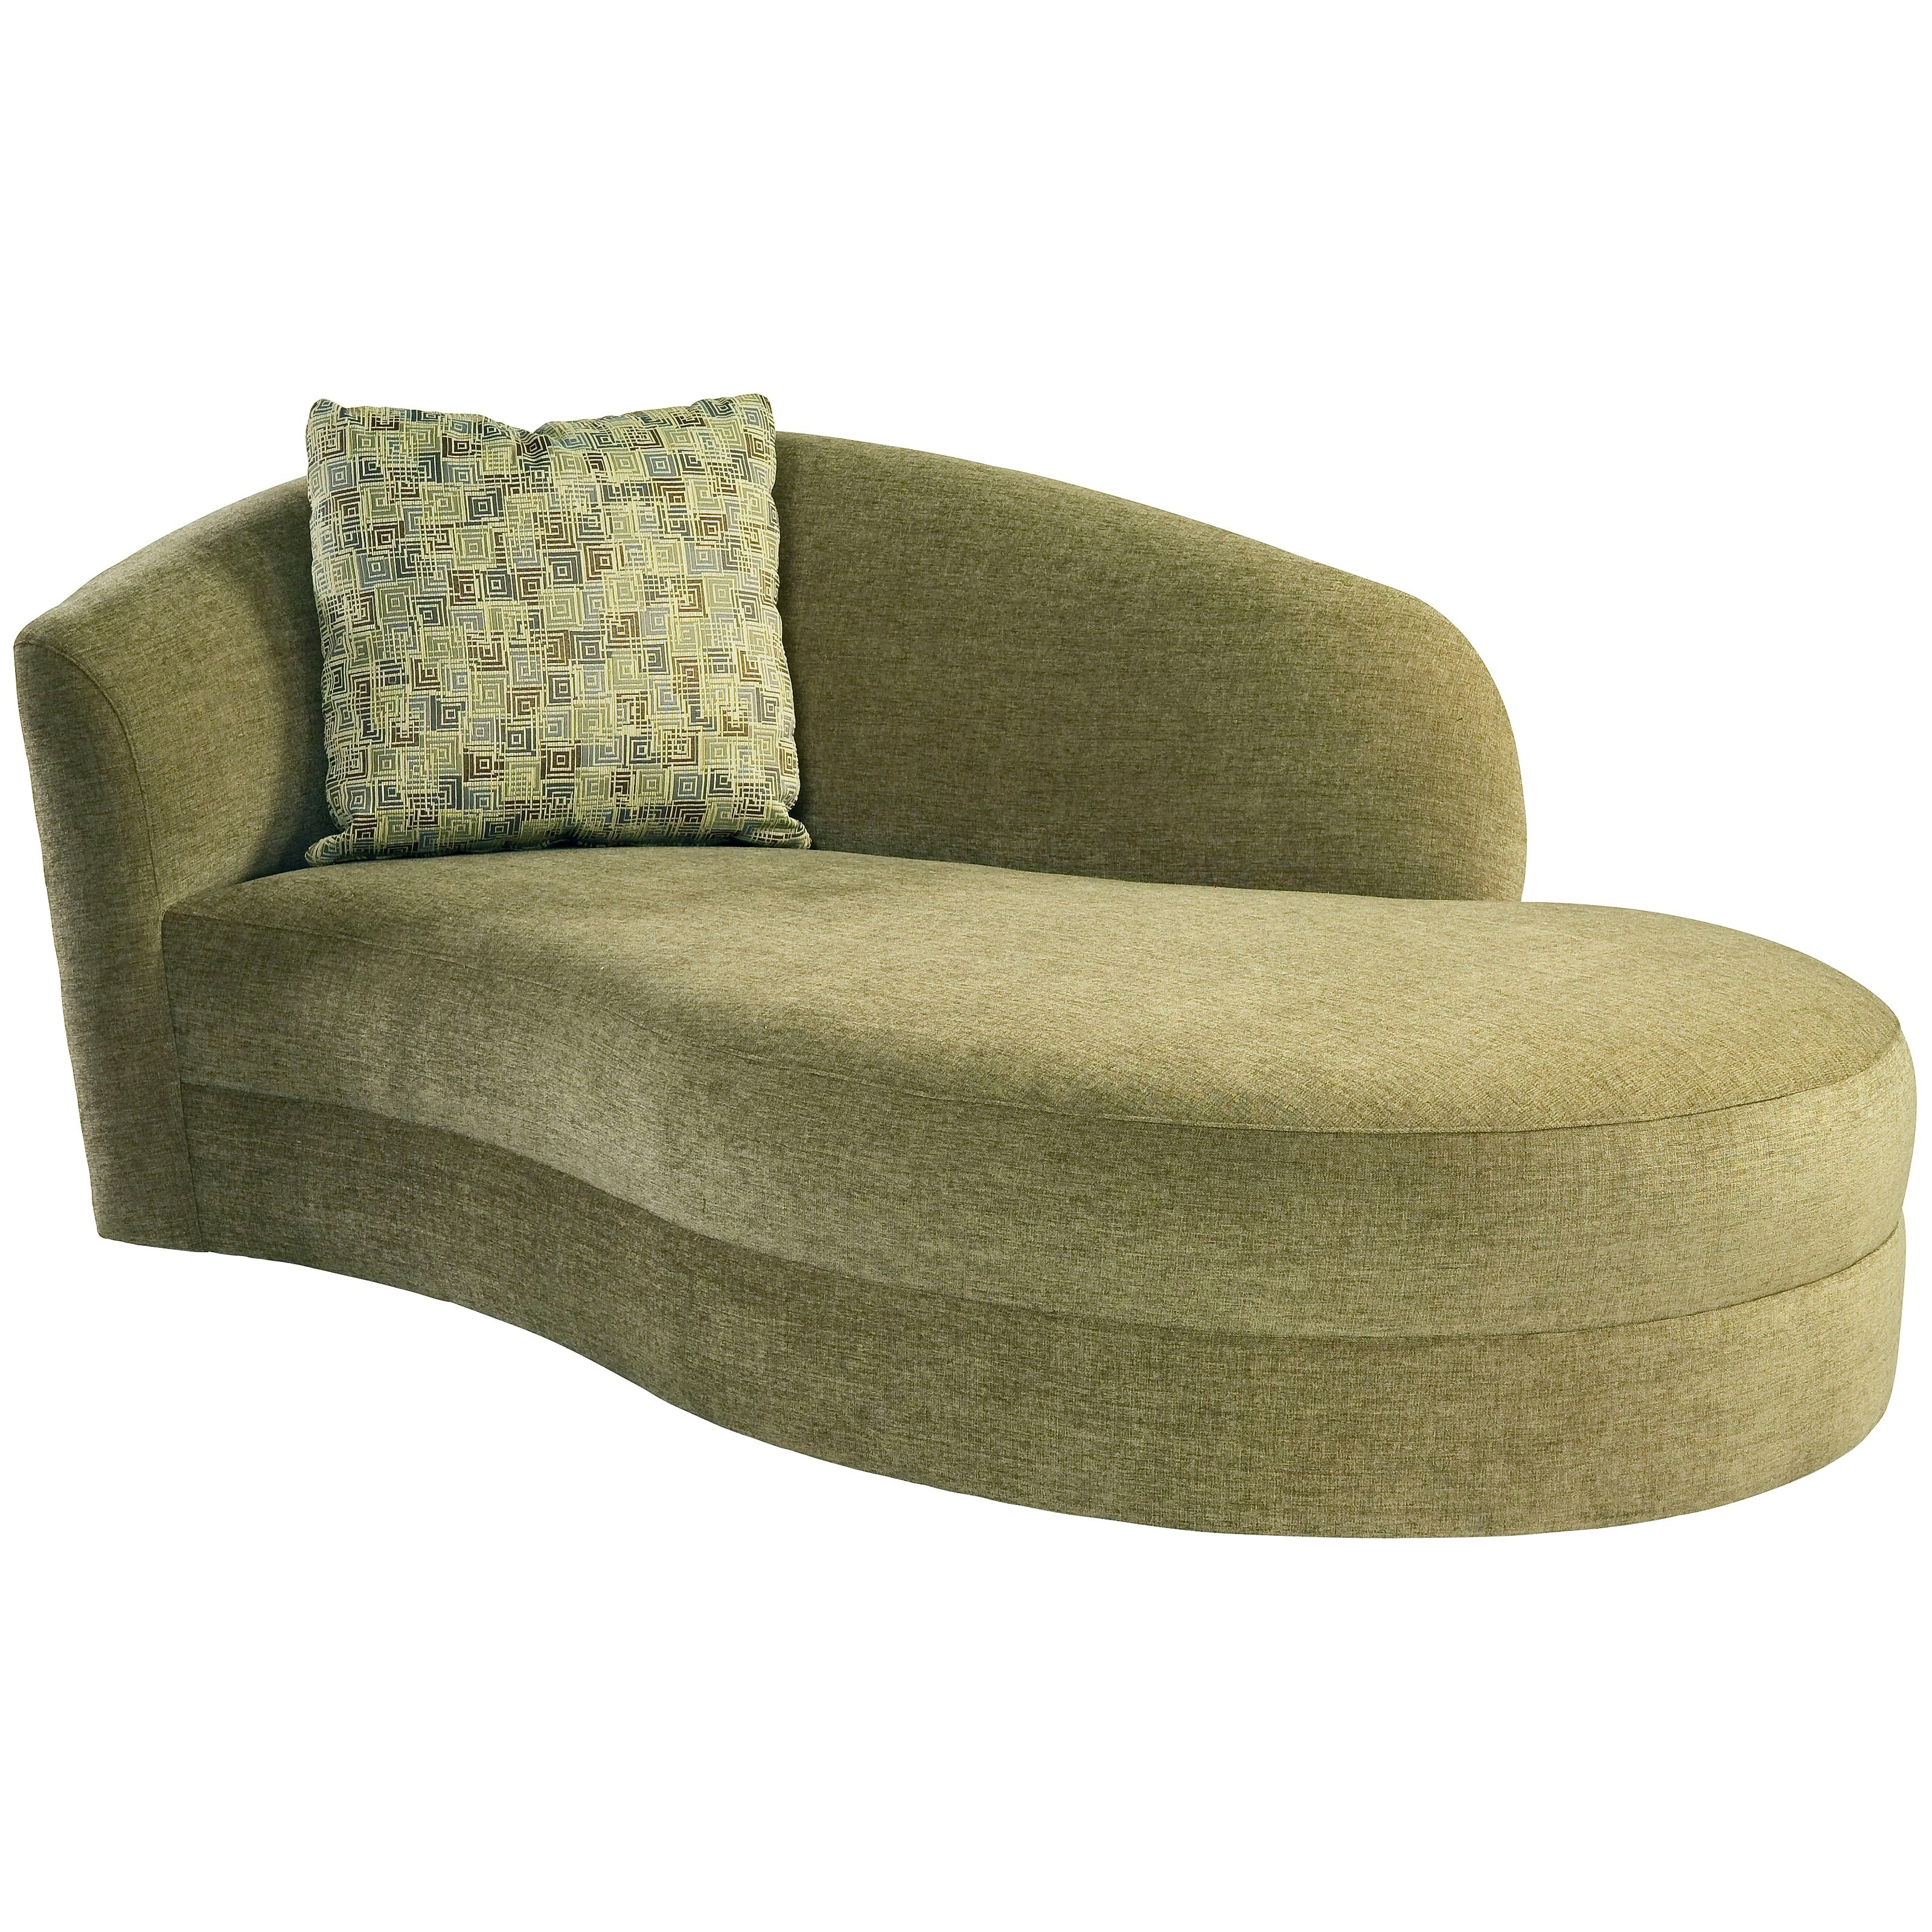 Mini Chaise Lounge Chairs Within Favorite Mini Loveseat Awesome Chaise Lounges Mini Chaise Lounge Buy Long (View 11 of 15)